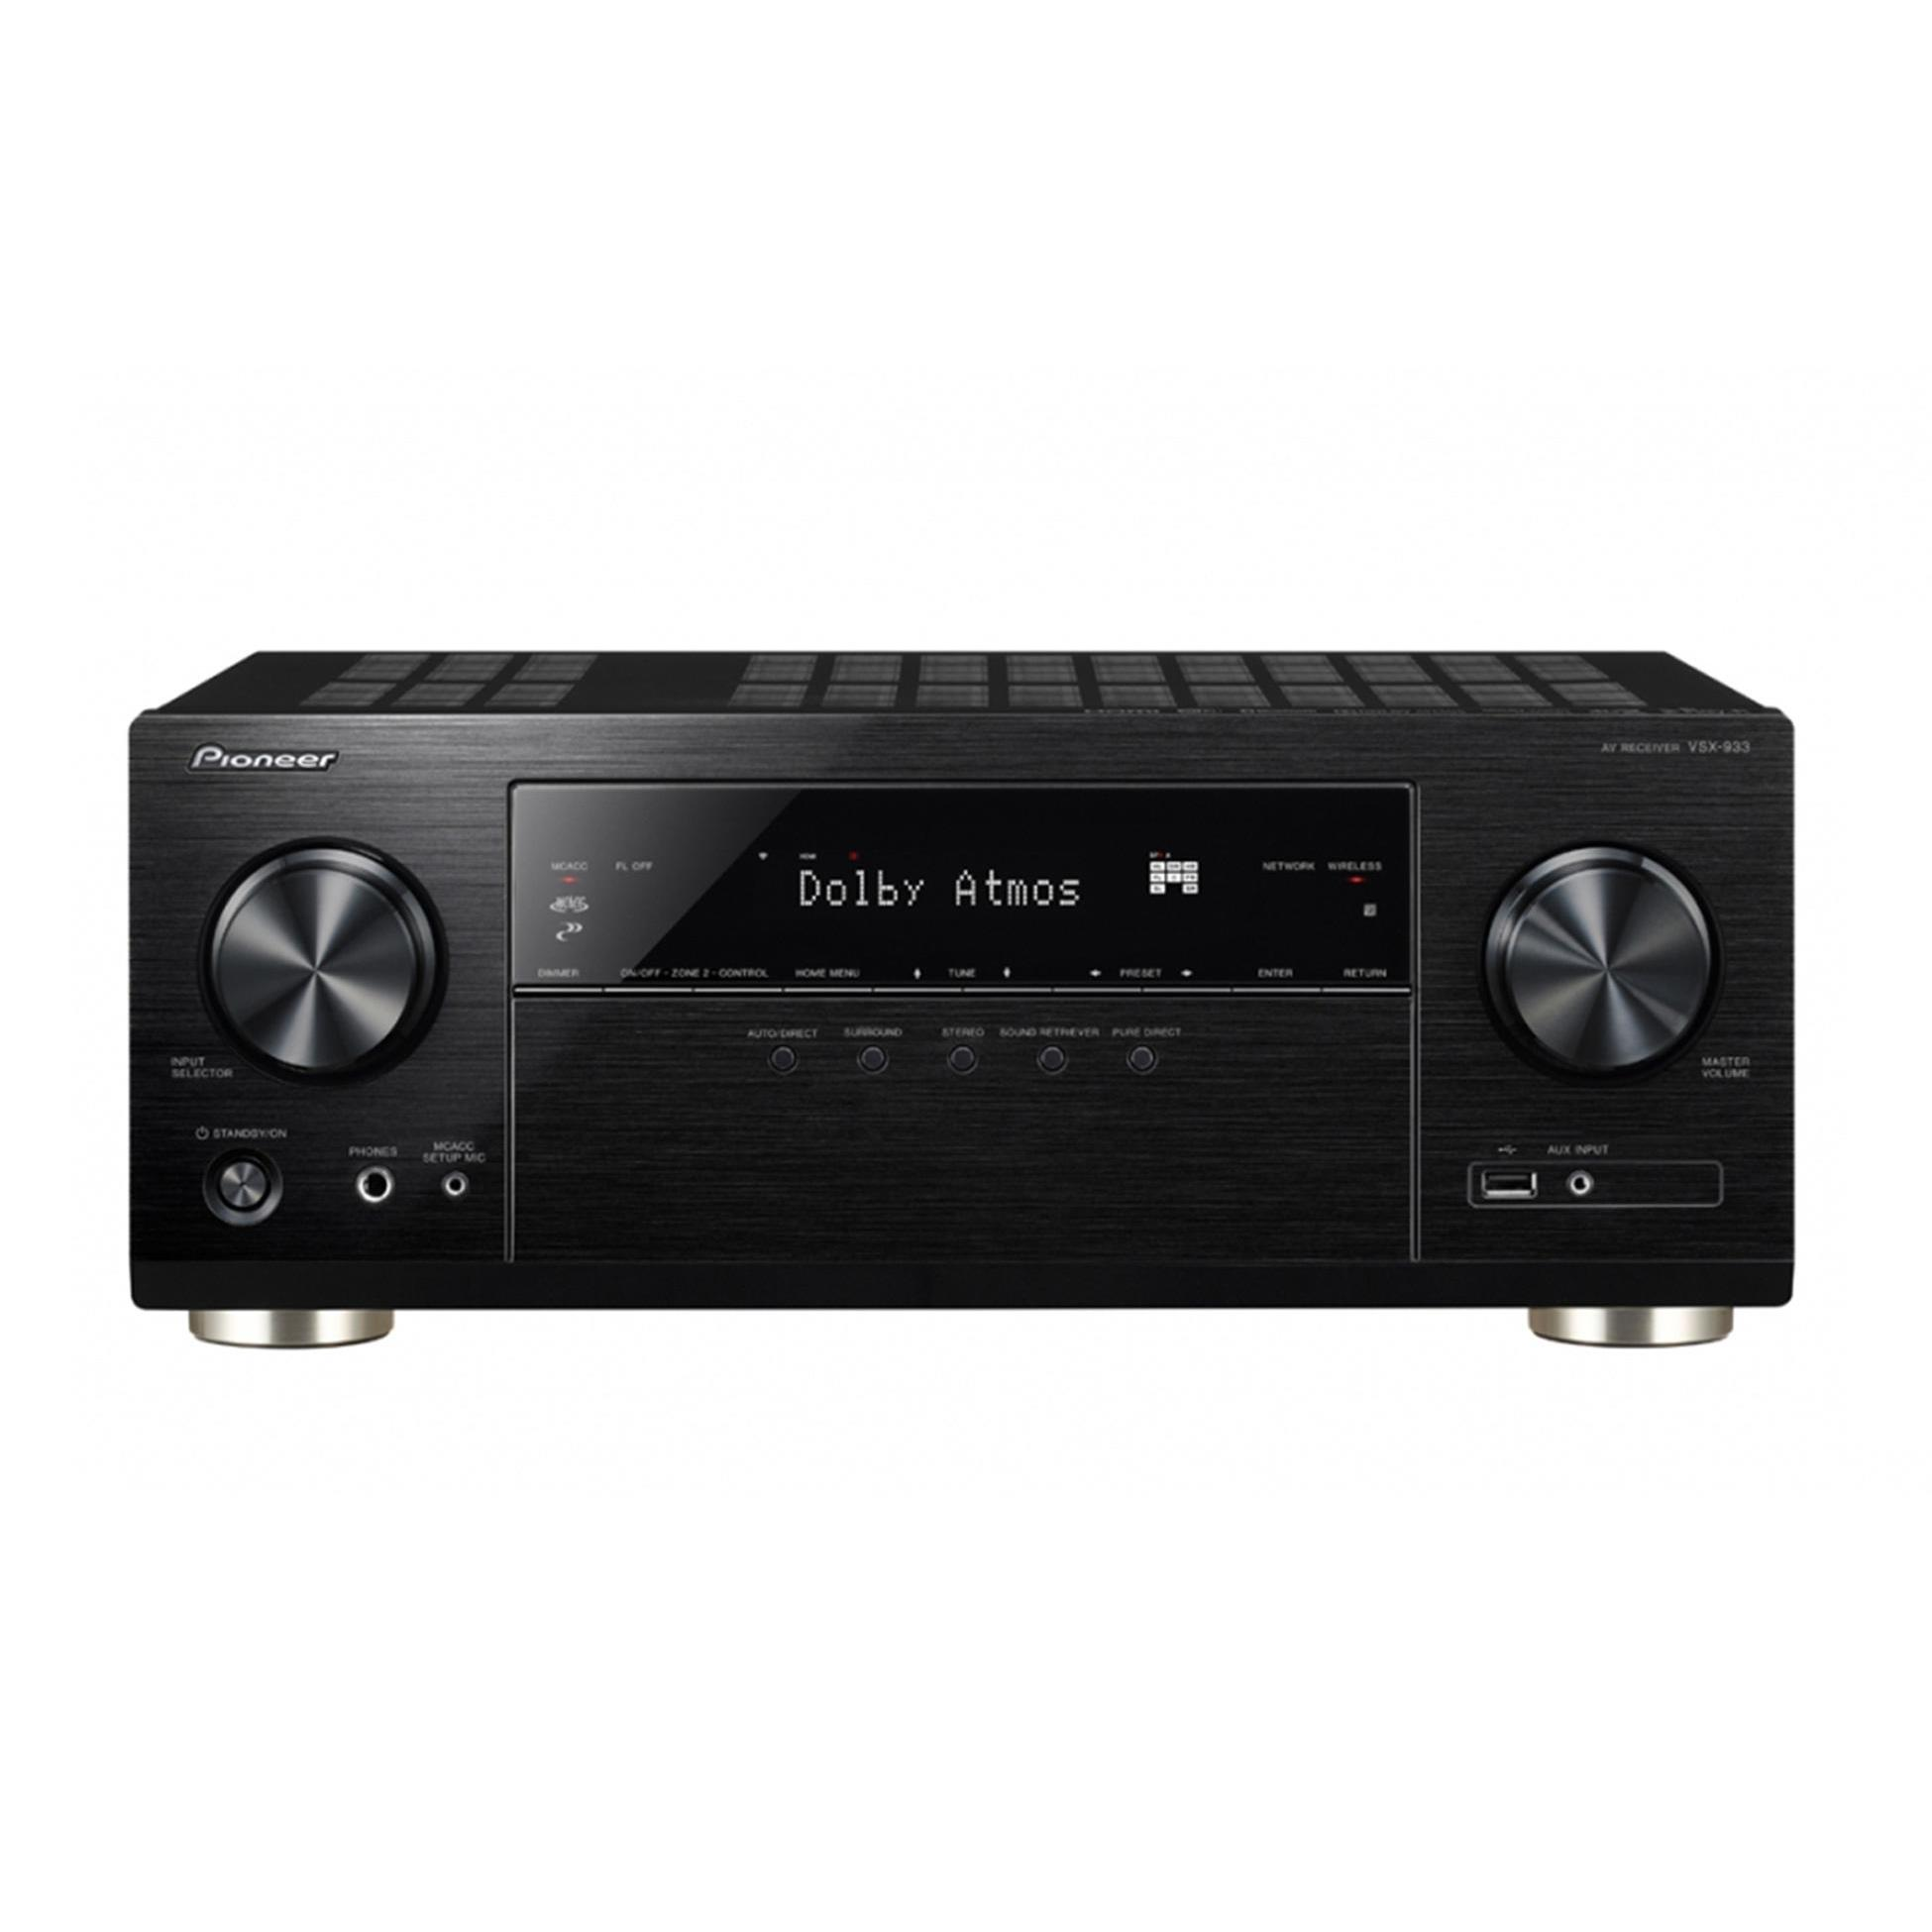 Richer Sounds Ireland - Pioneer VSX933 AV Receiver Black